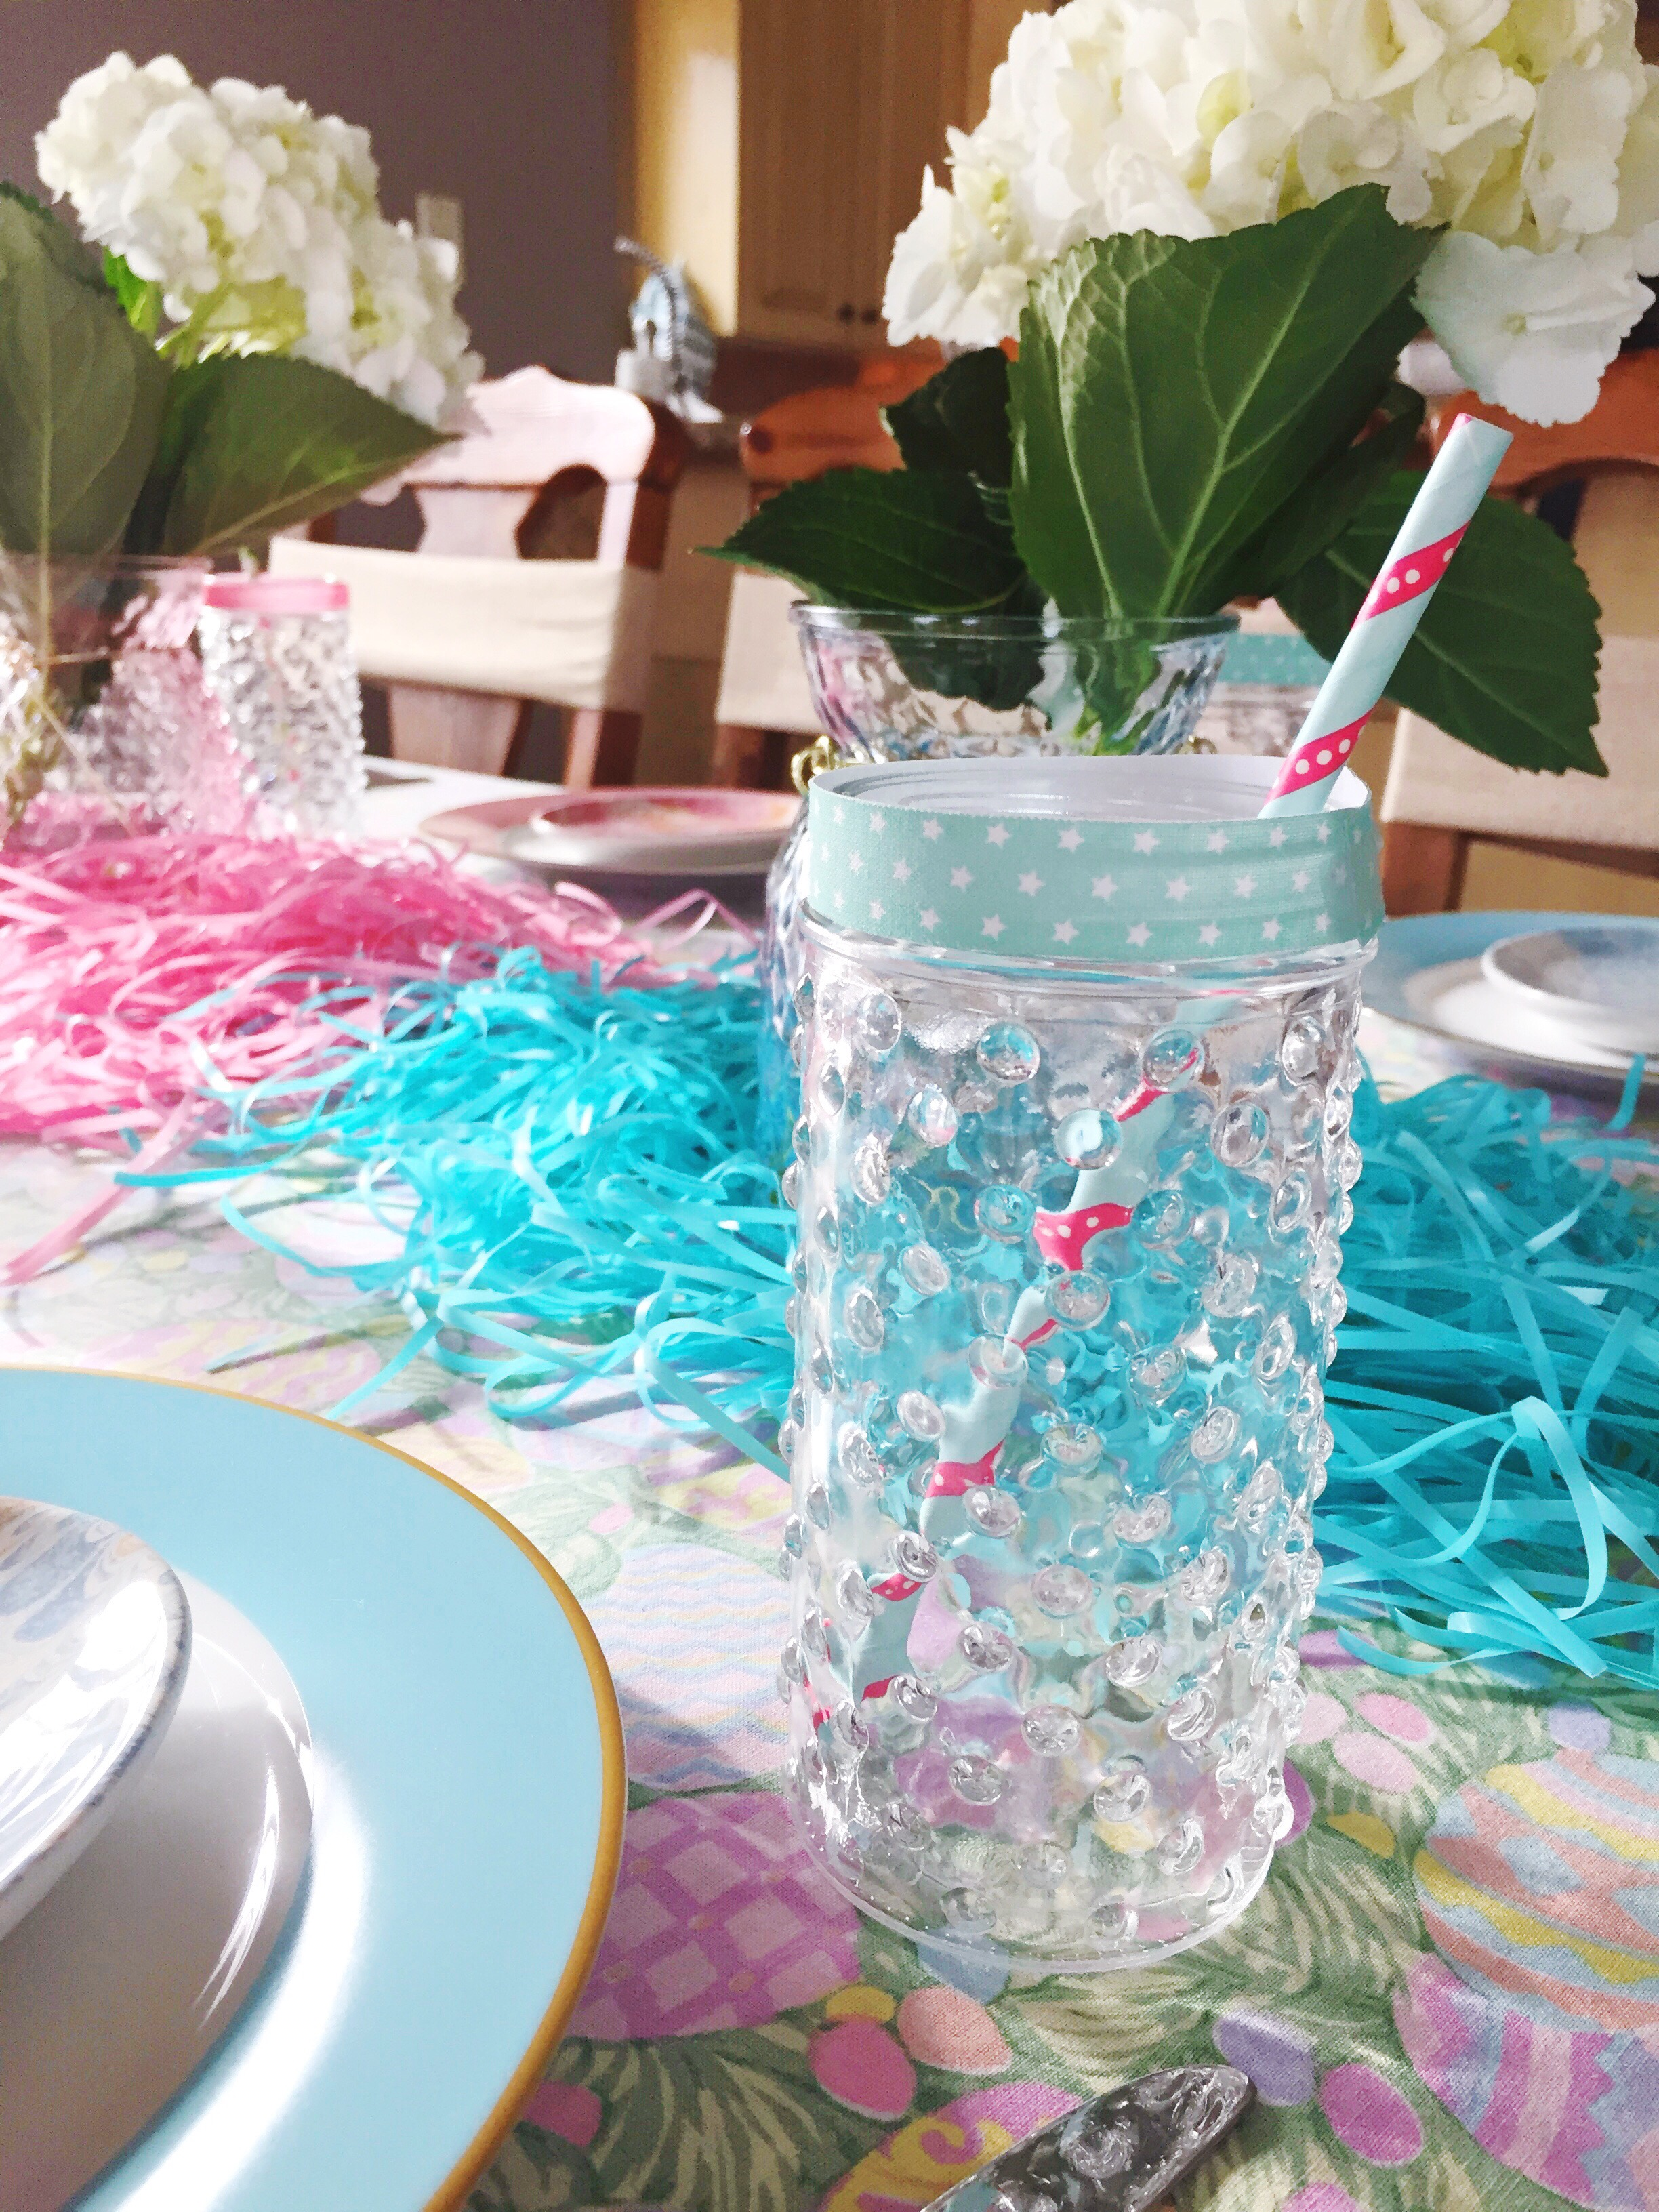 Easter Party Table Ideas_Hobnail Glasses_Paper Straws_Target_Design Organize Party.JPG